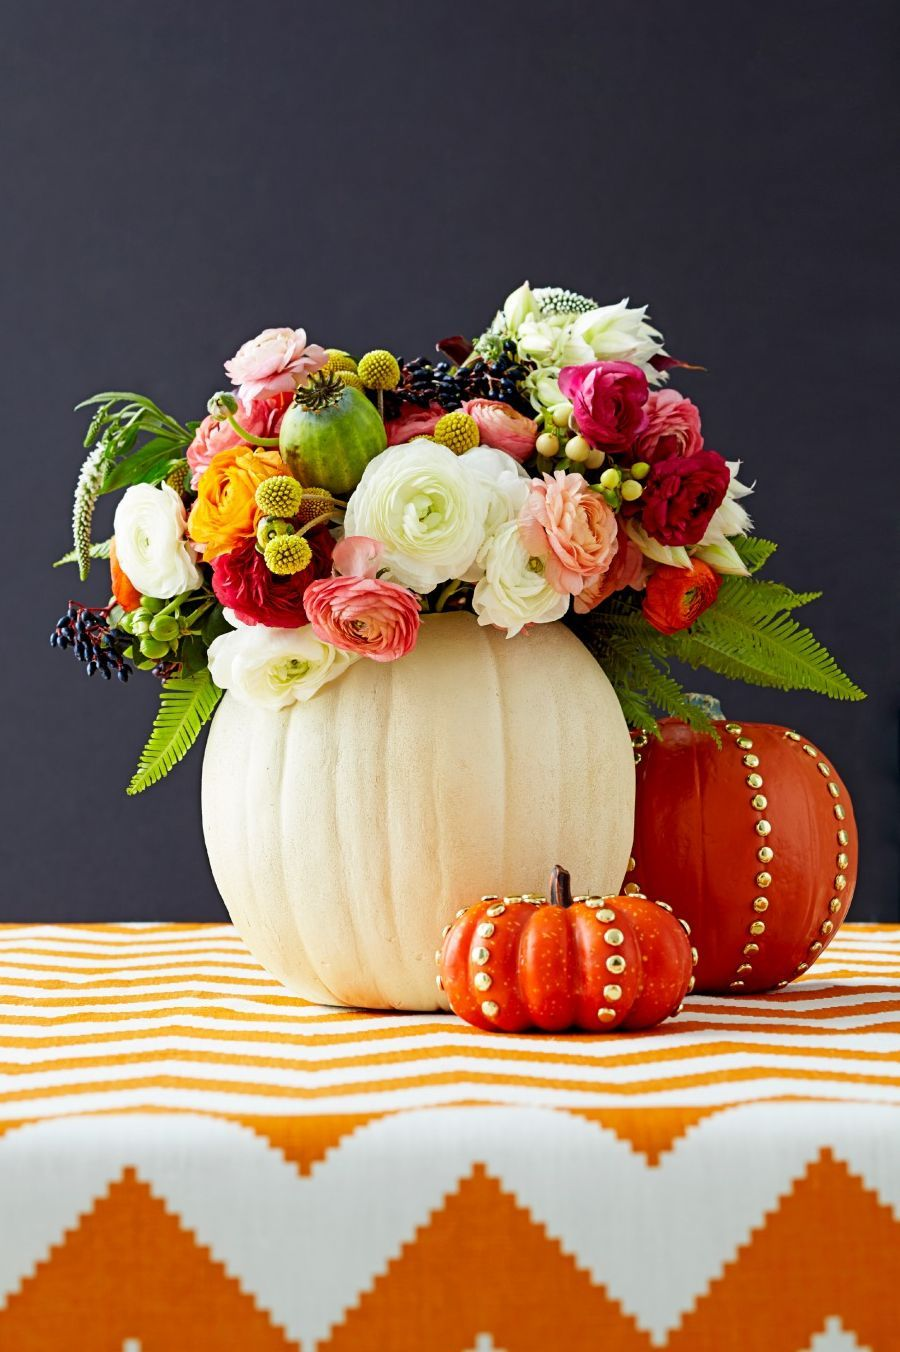 50 Easy Thanksgiving Decorations Cute And Simple Decor Ideas For Thanksgiving 2020